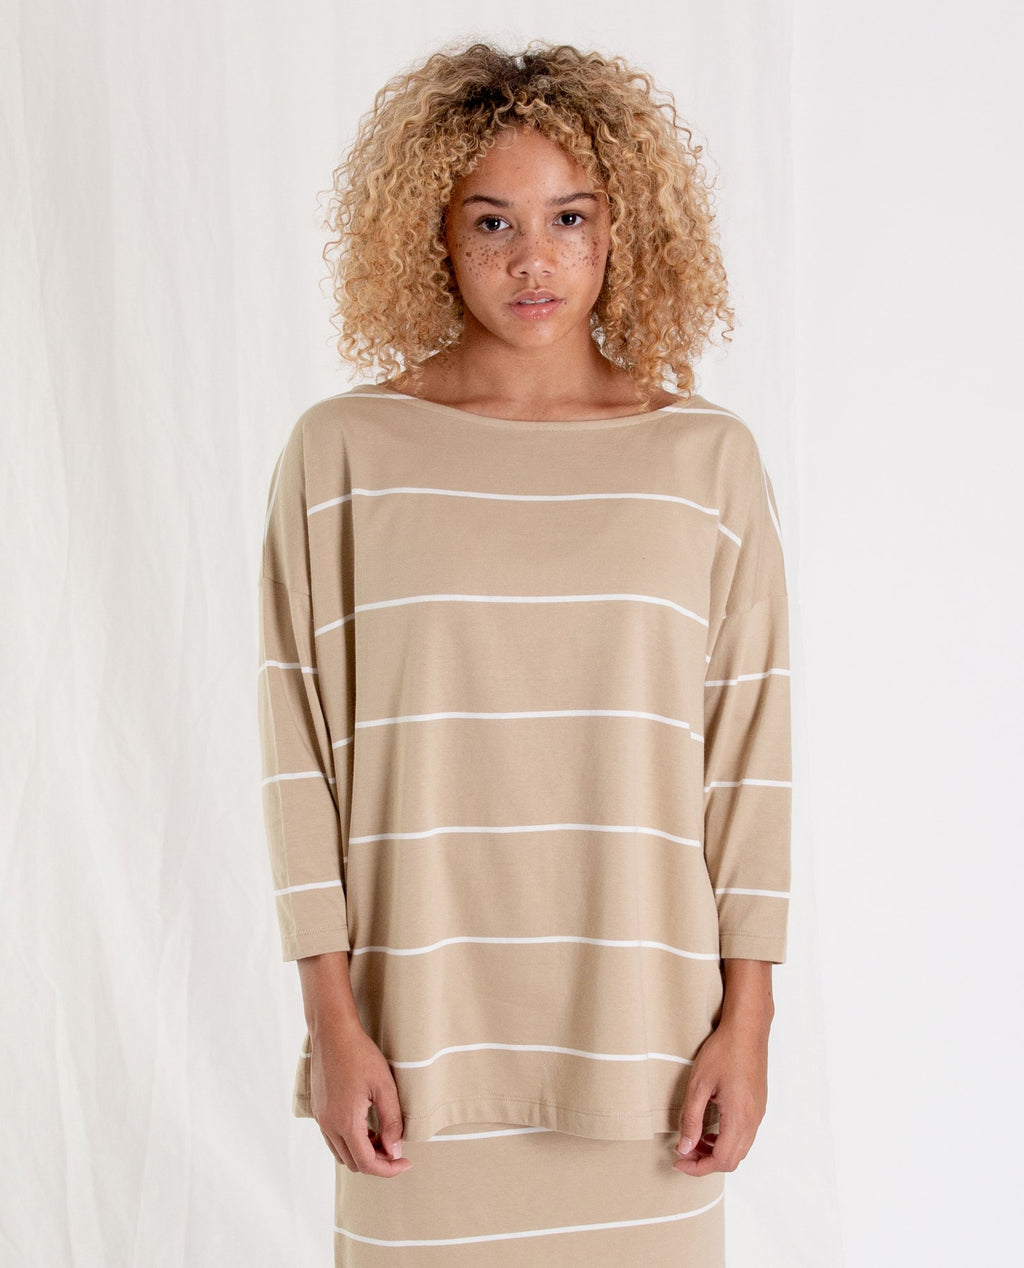 MAFALDA-SUE Organic Cotton Top In Sand And Ecru